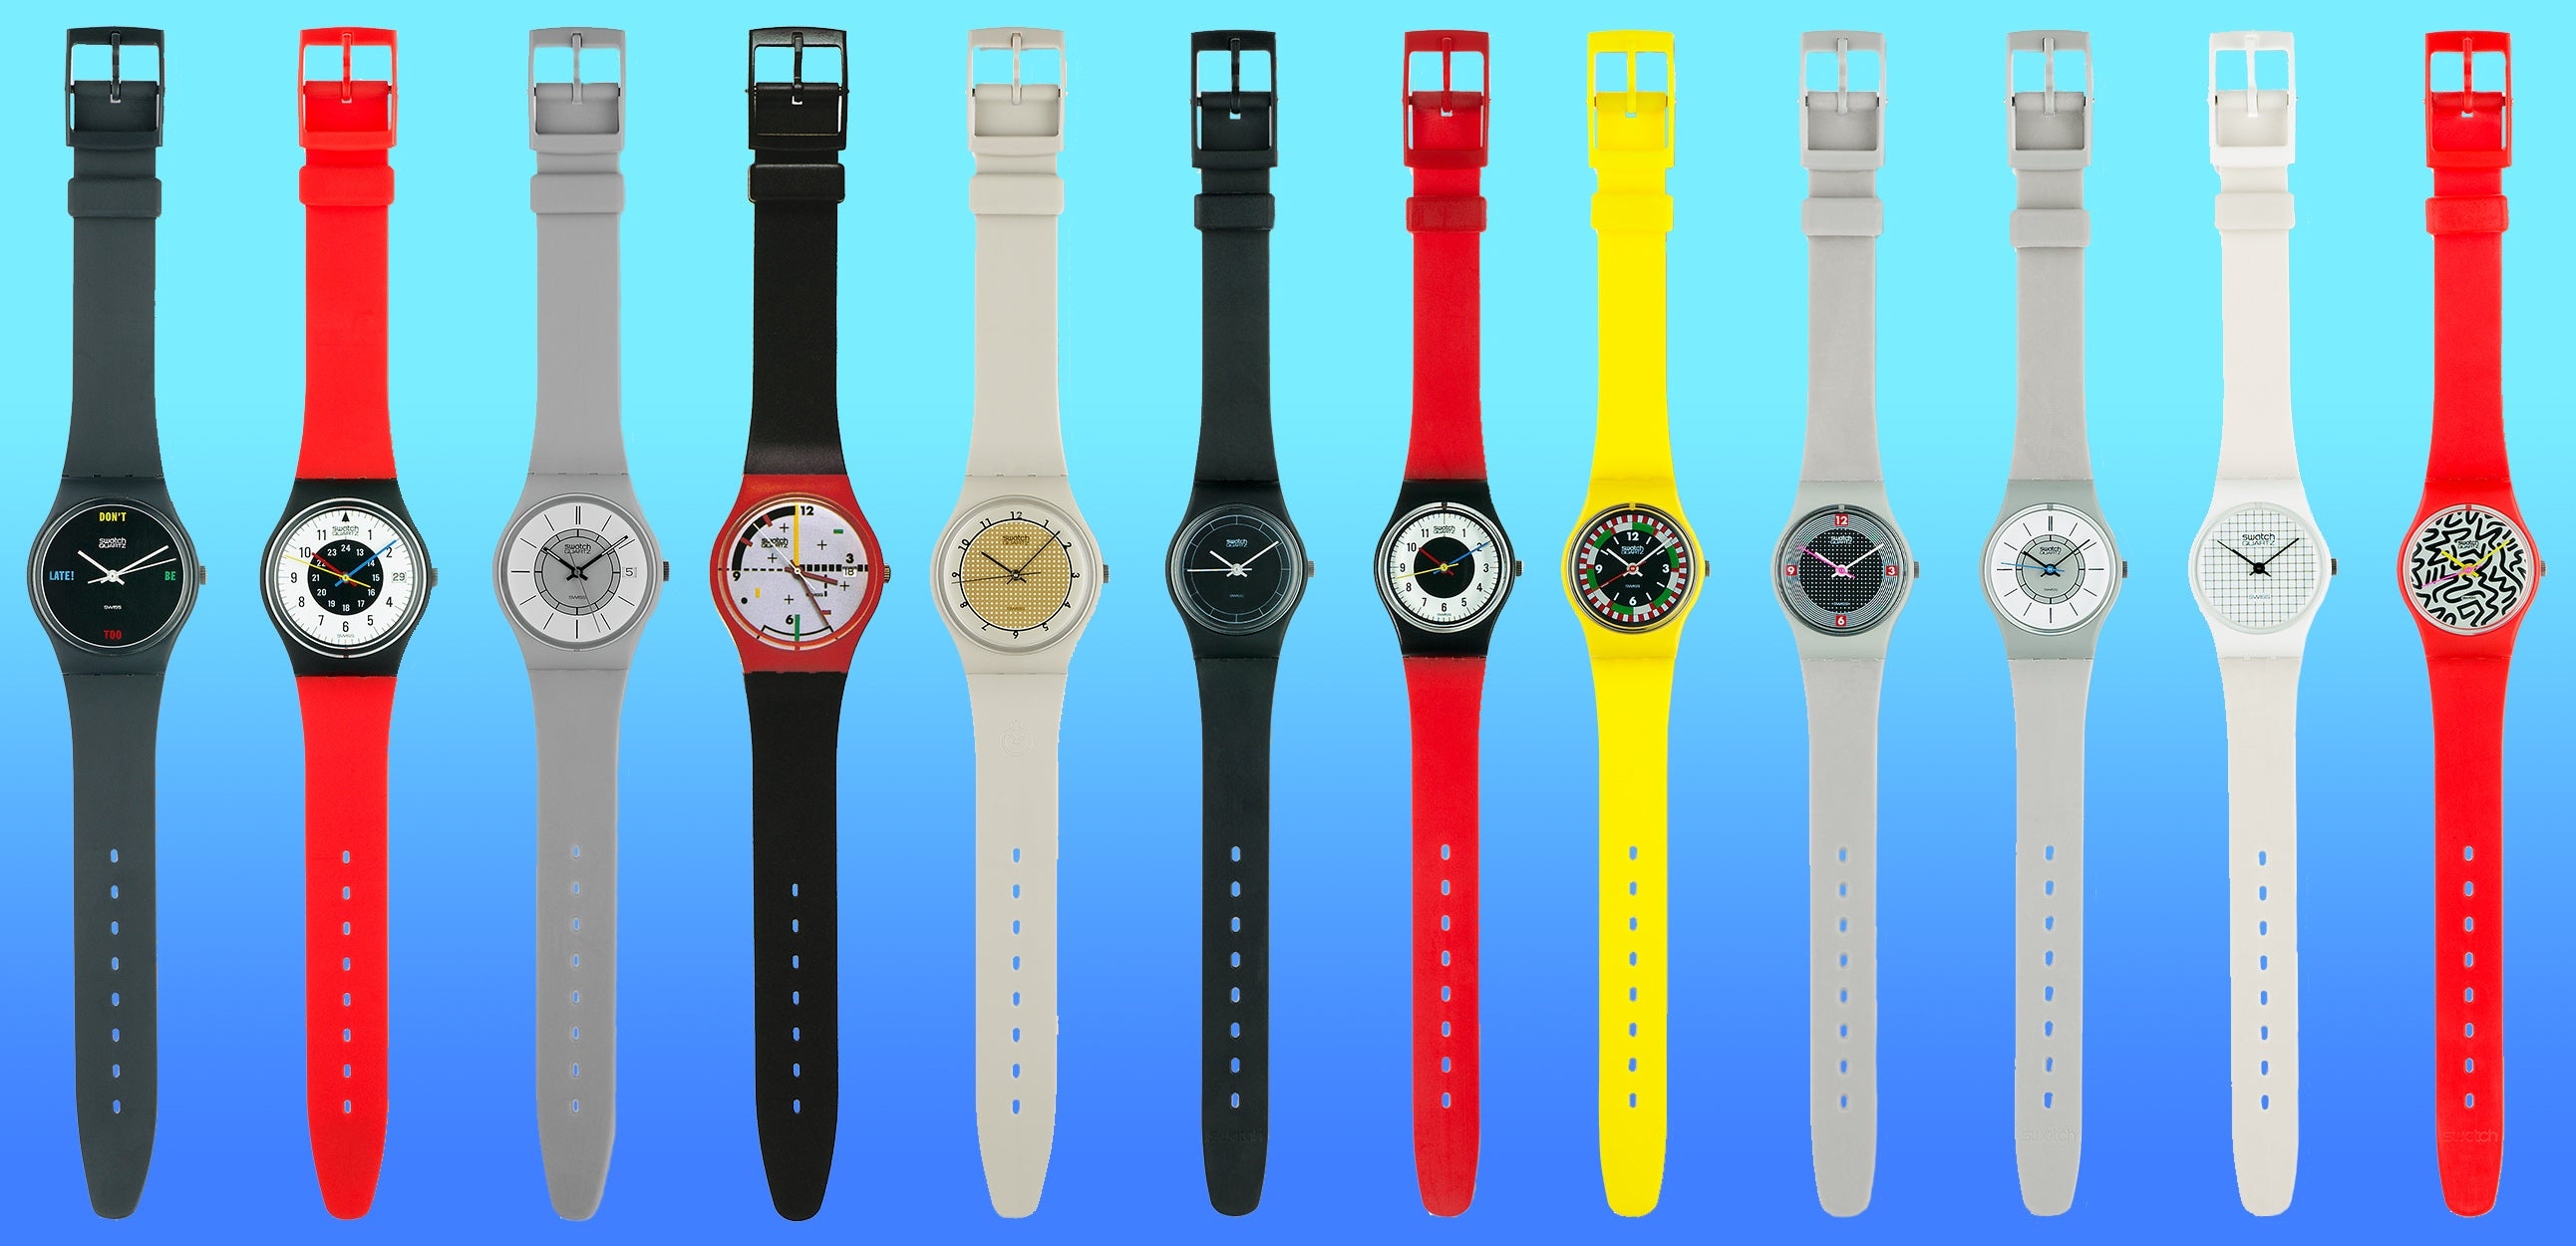 First 12 models released by Swatch in 1983 when the brand was launched for A Collected Man London